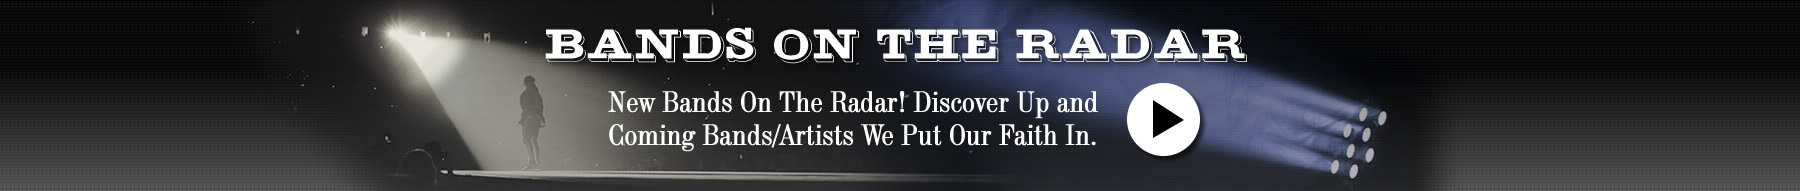 Bands on The Radar